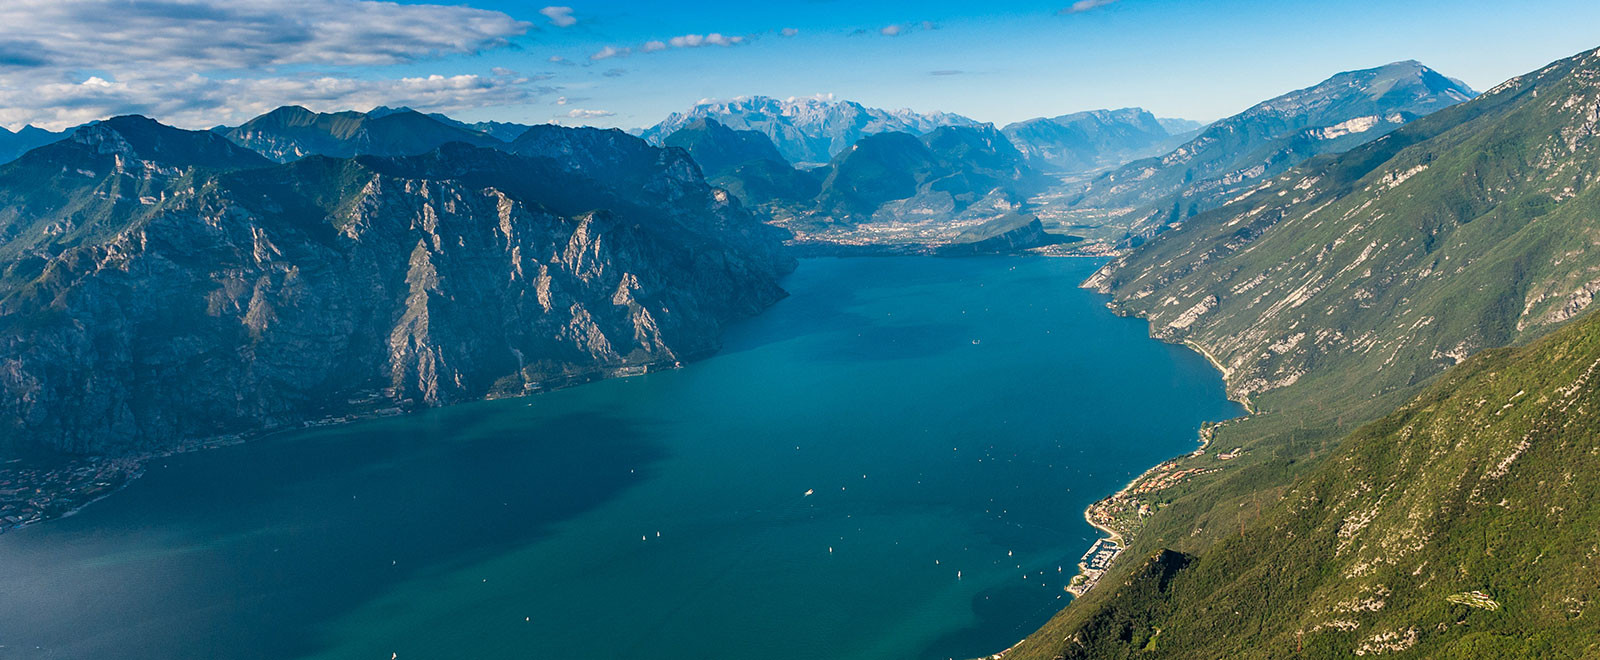 Lake garda from a paragliding tandem flight